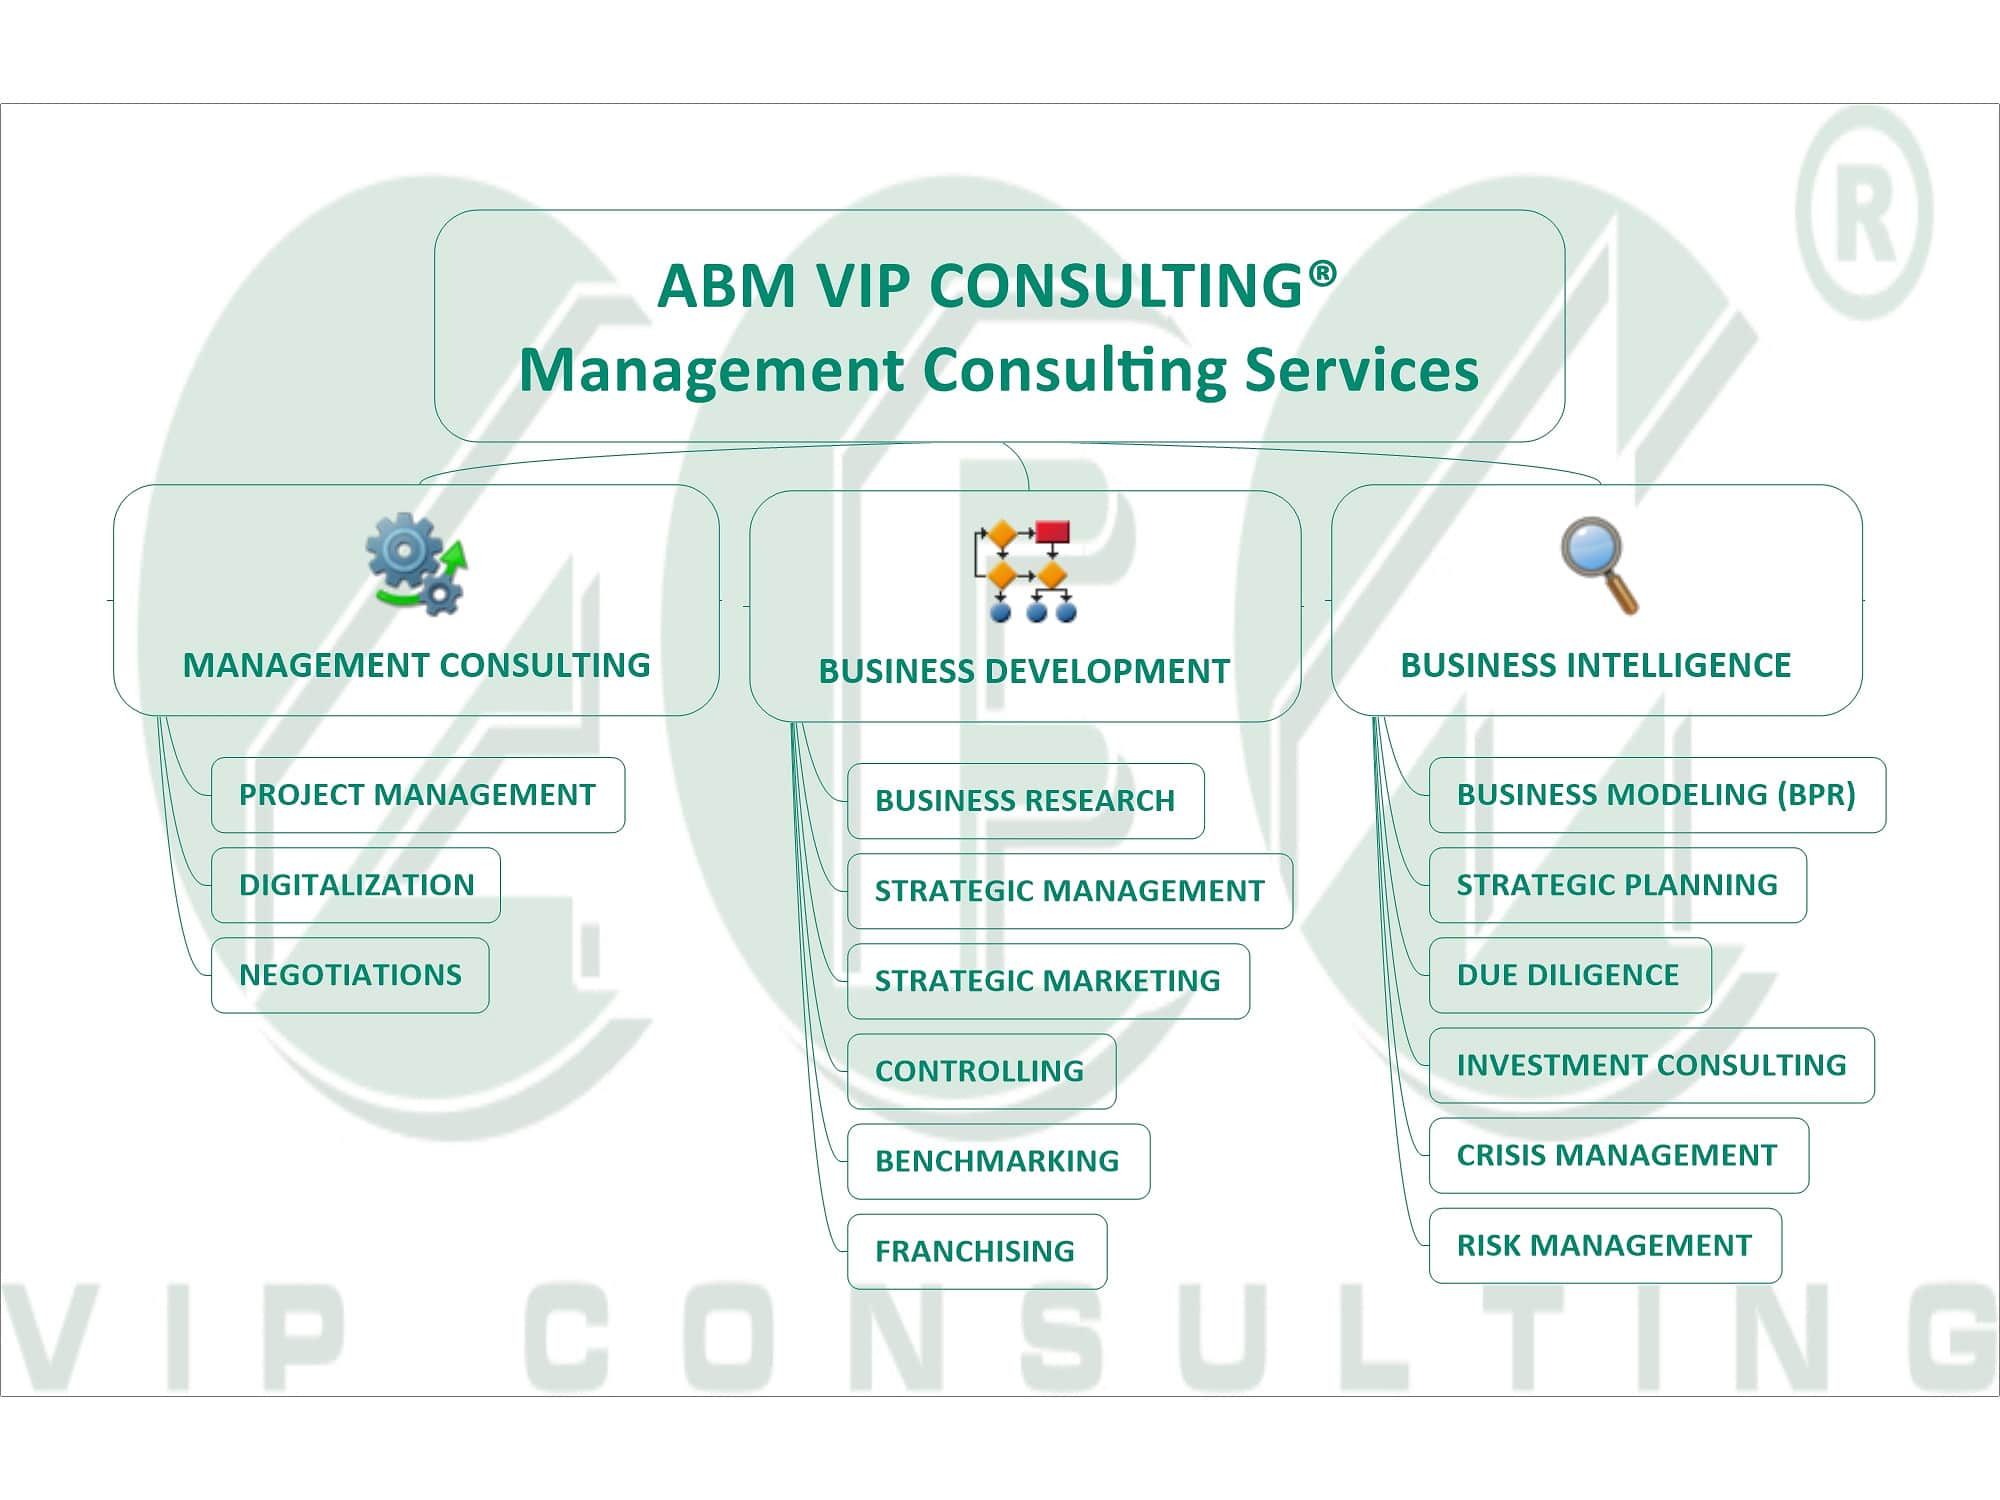 ABM VIP CONSULTING® Management Consulting Services WM